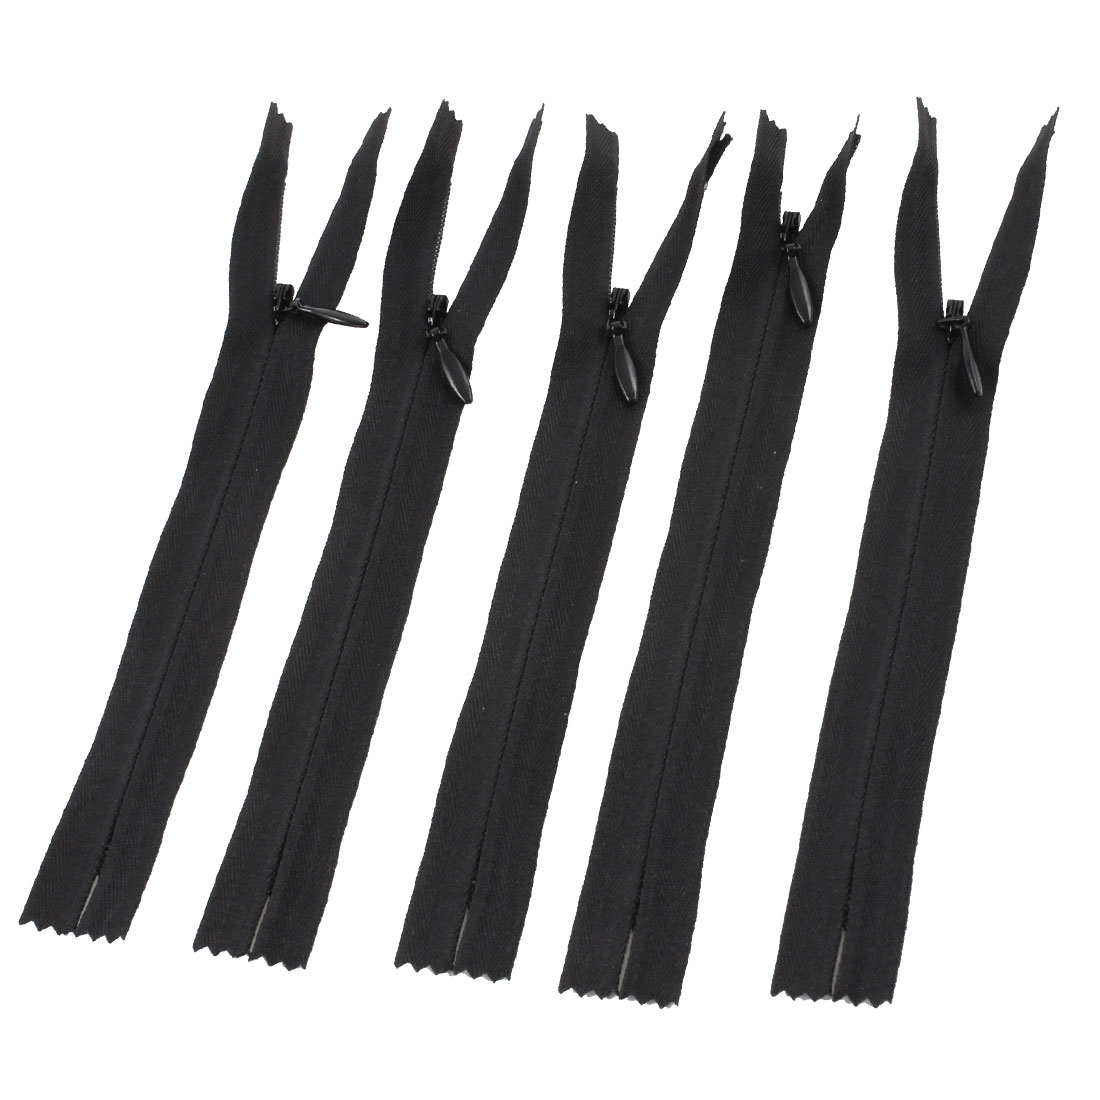 "5 Pcs Black Polyester Rectangular Pull Tab Zip Fastener 7.7"" Length"